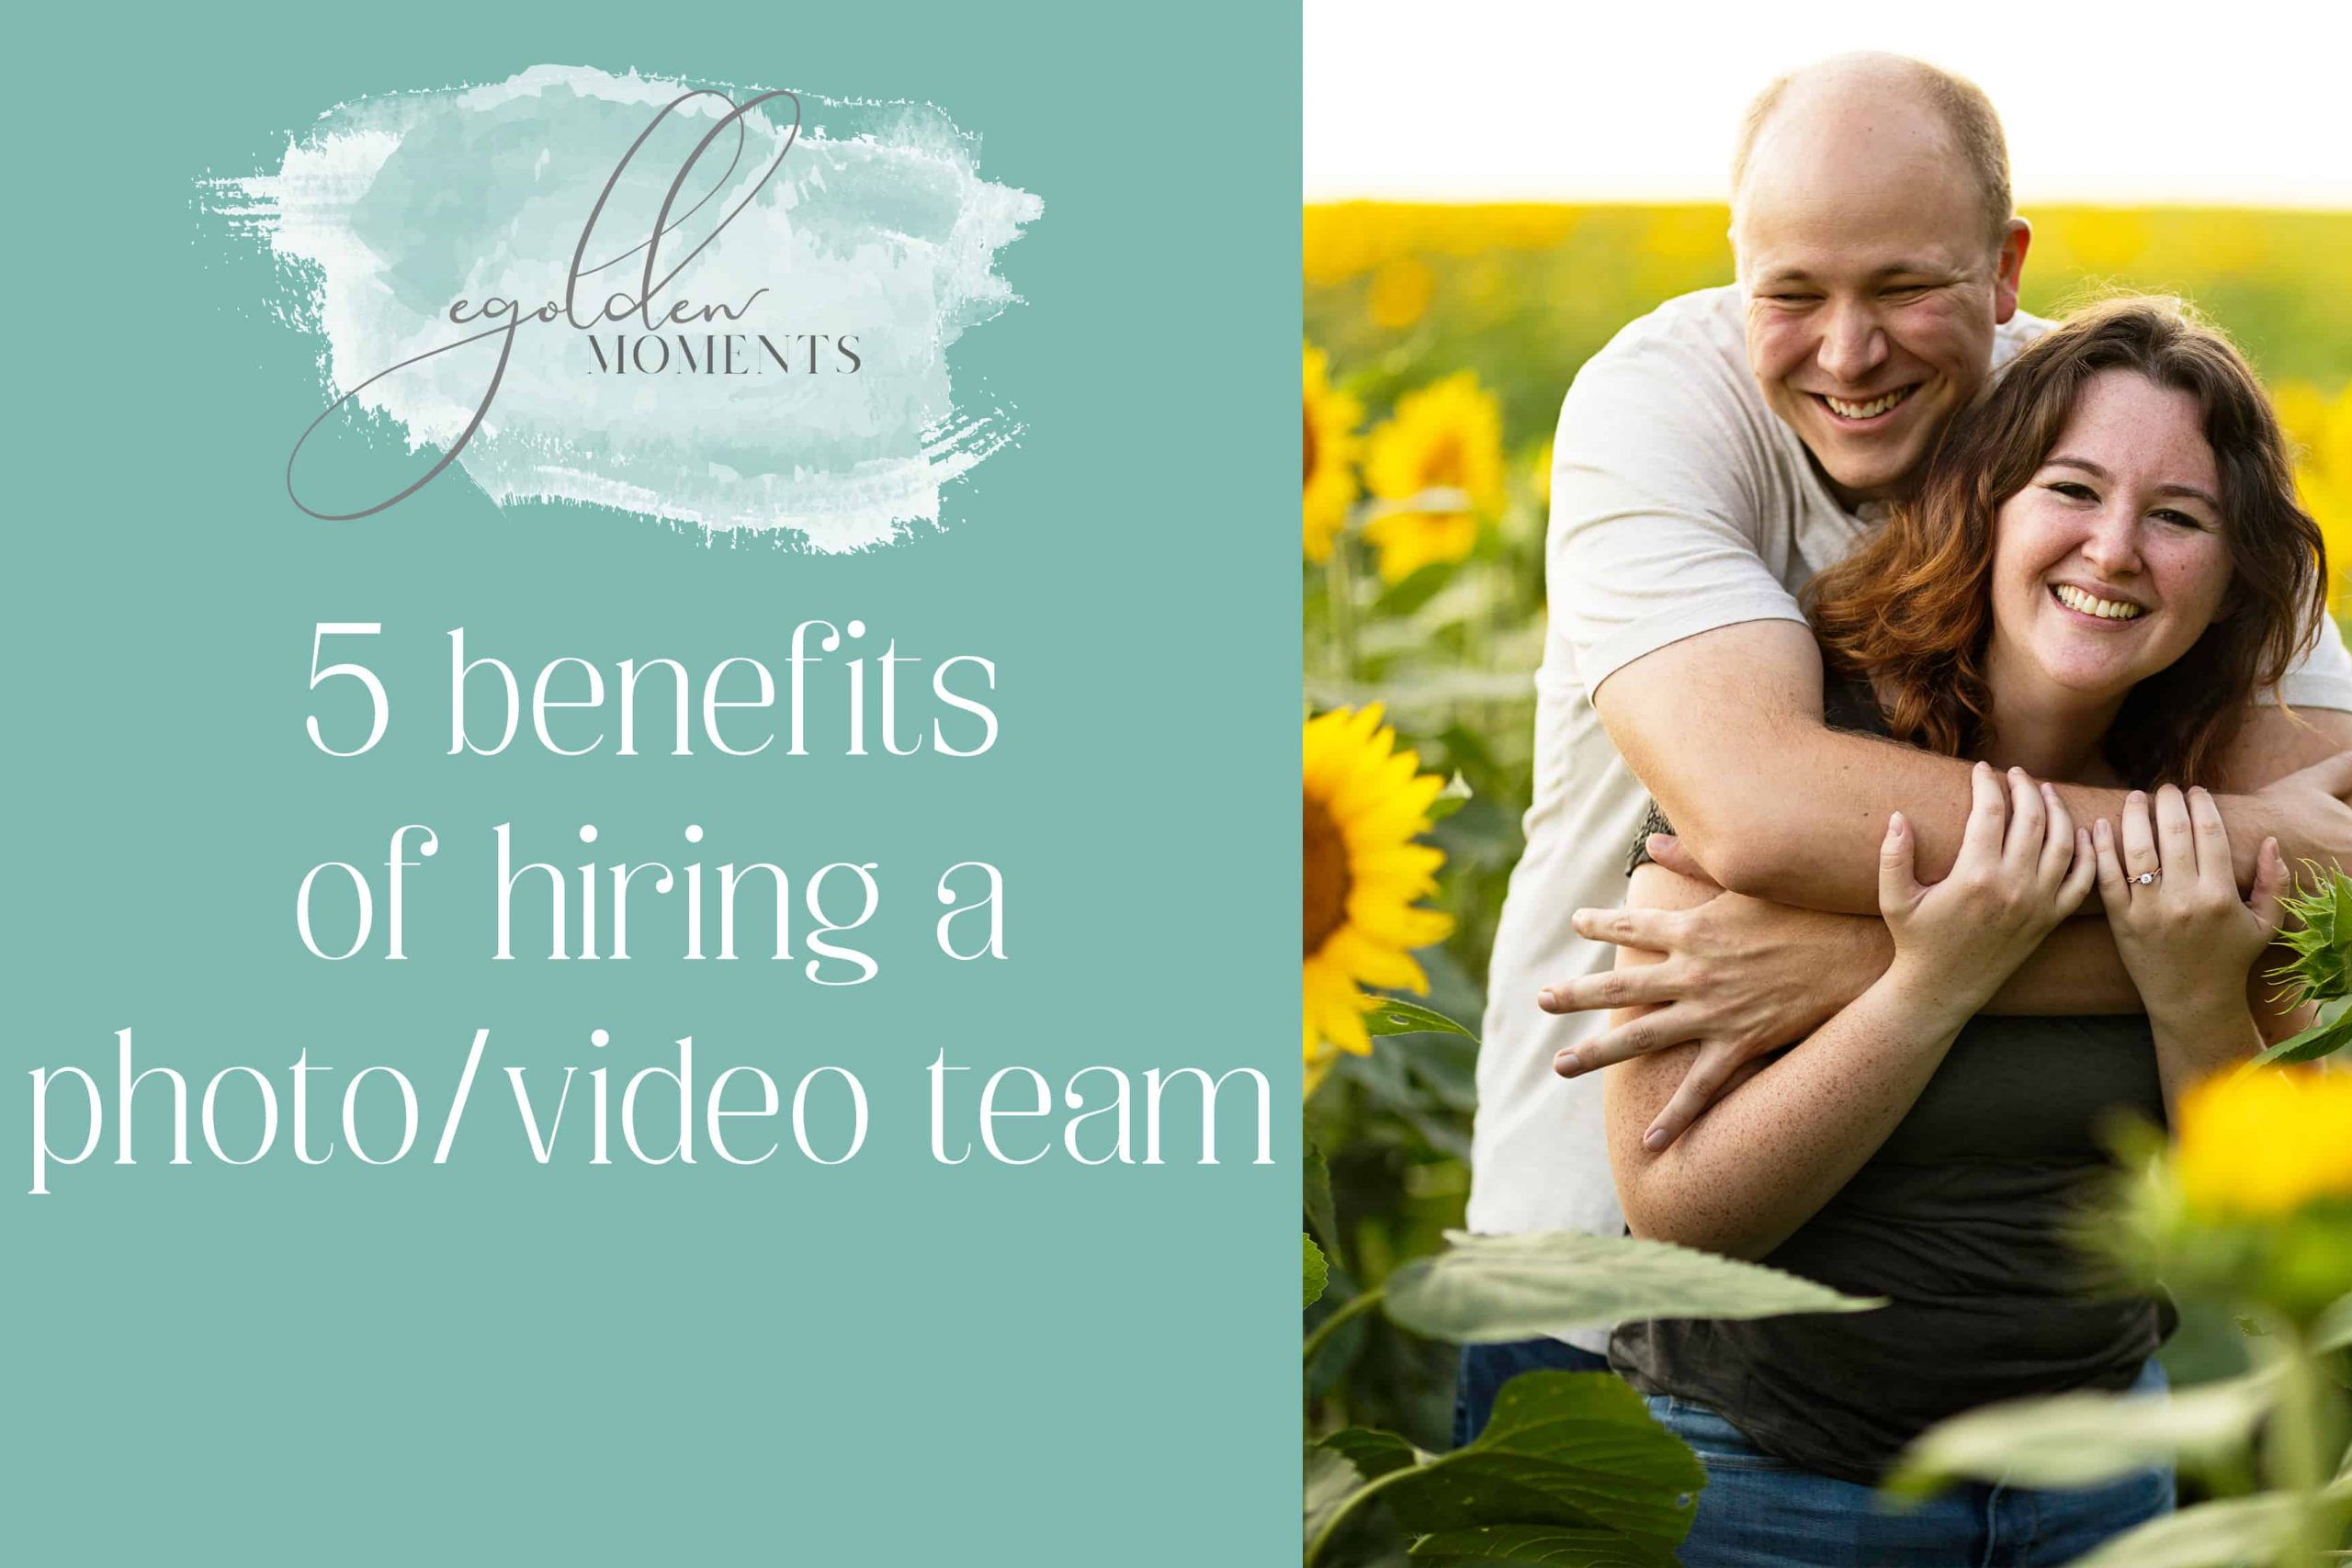 benefits of hiring a photo/video team